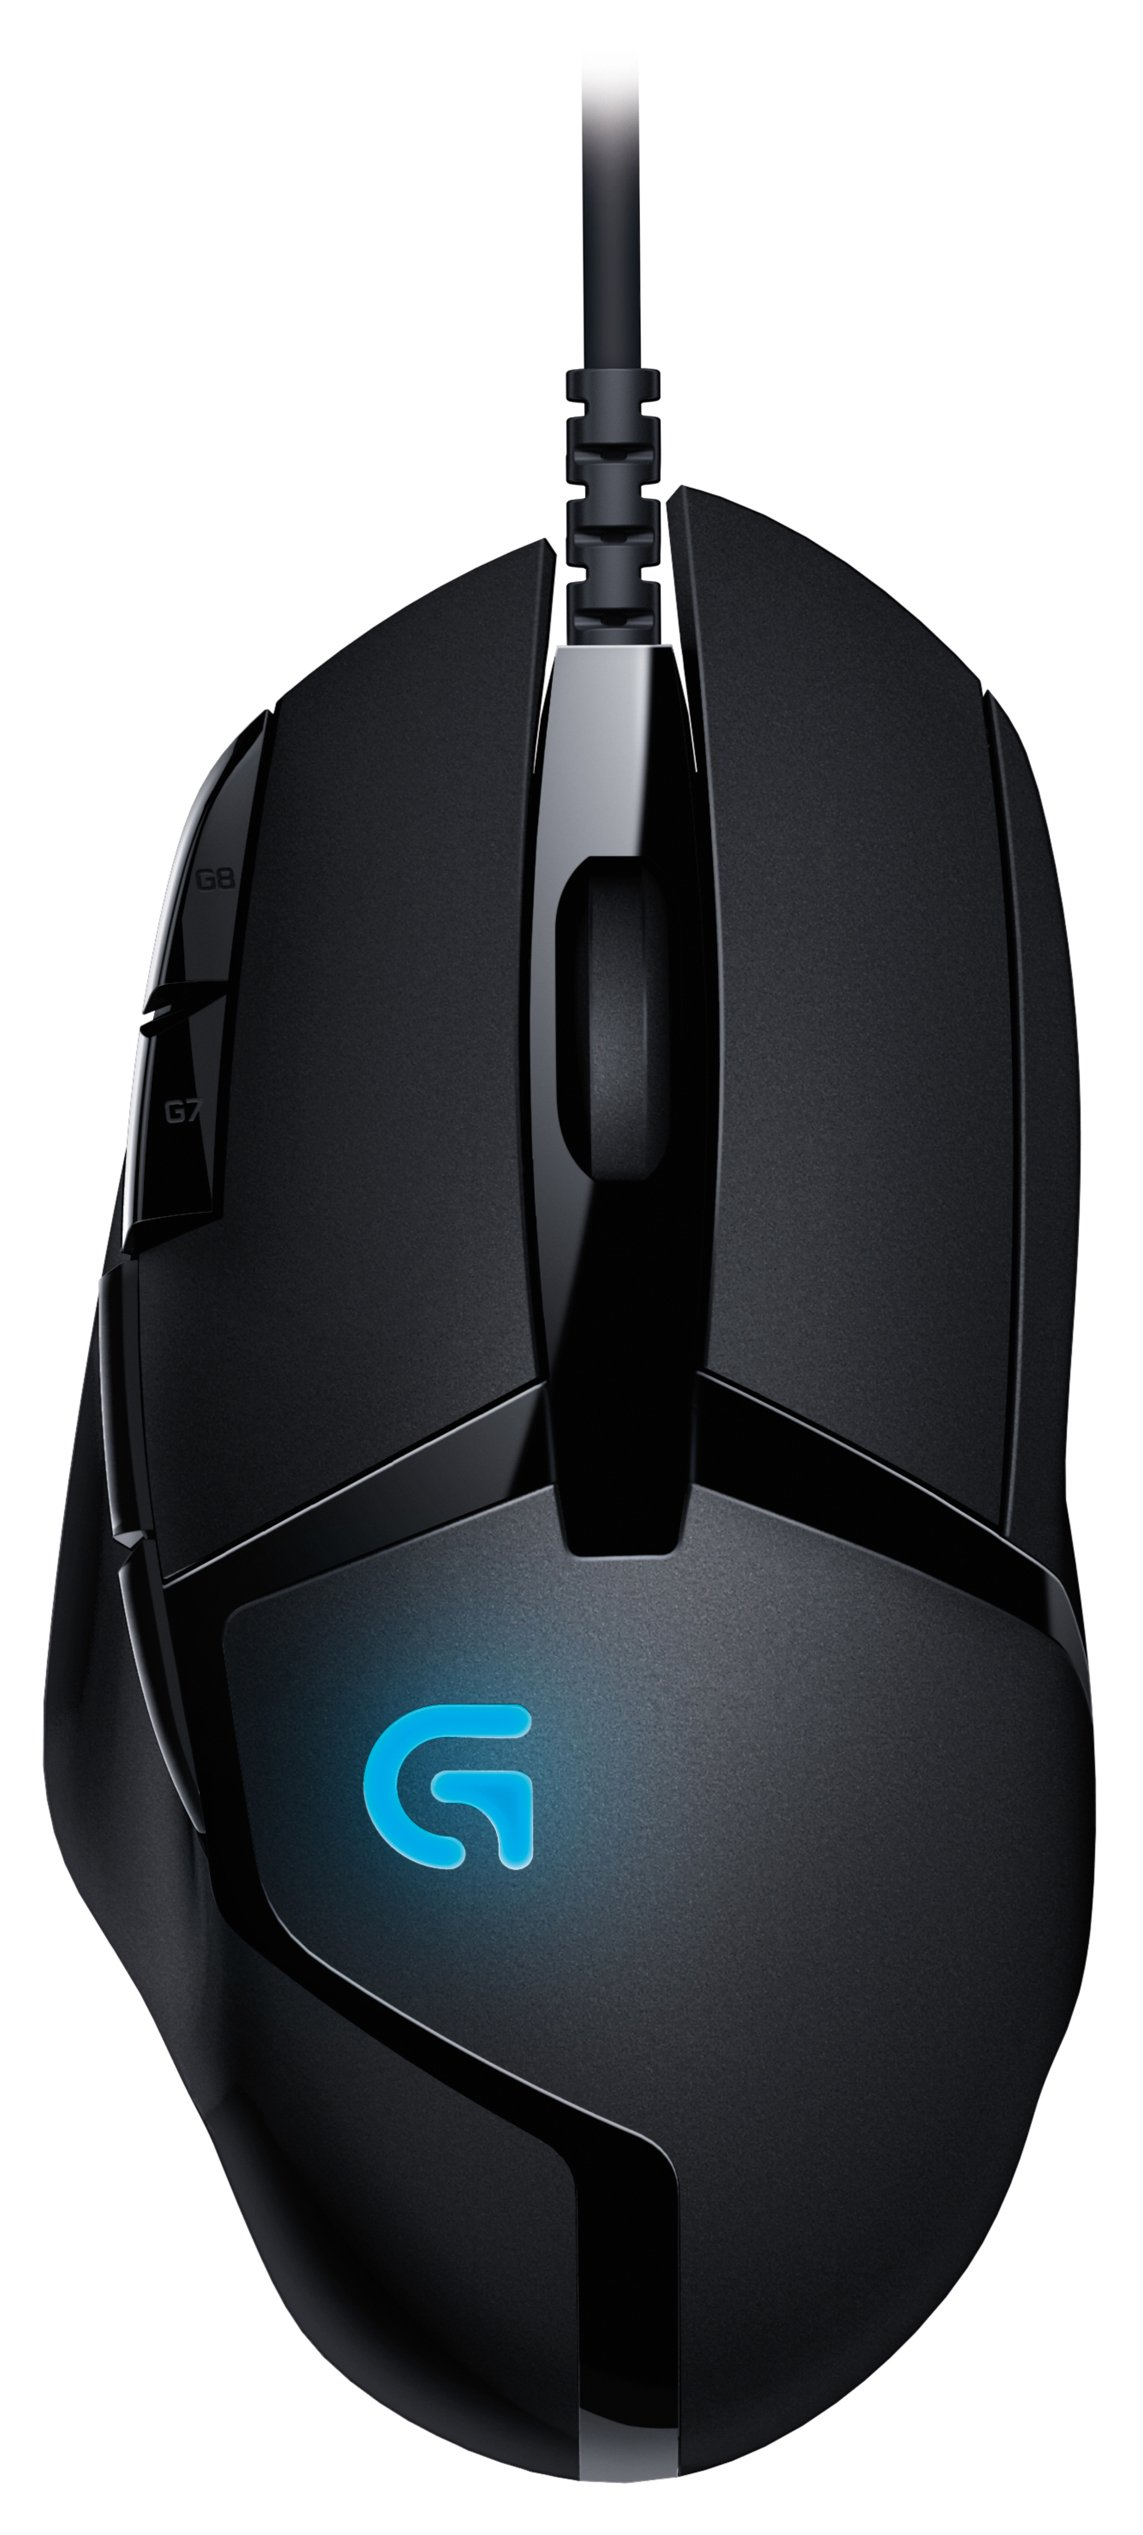 Logitech G402 Hyperion Fury FPS Gaming Mouse by Logitech (Image #1)